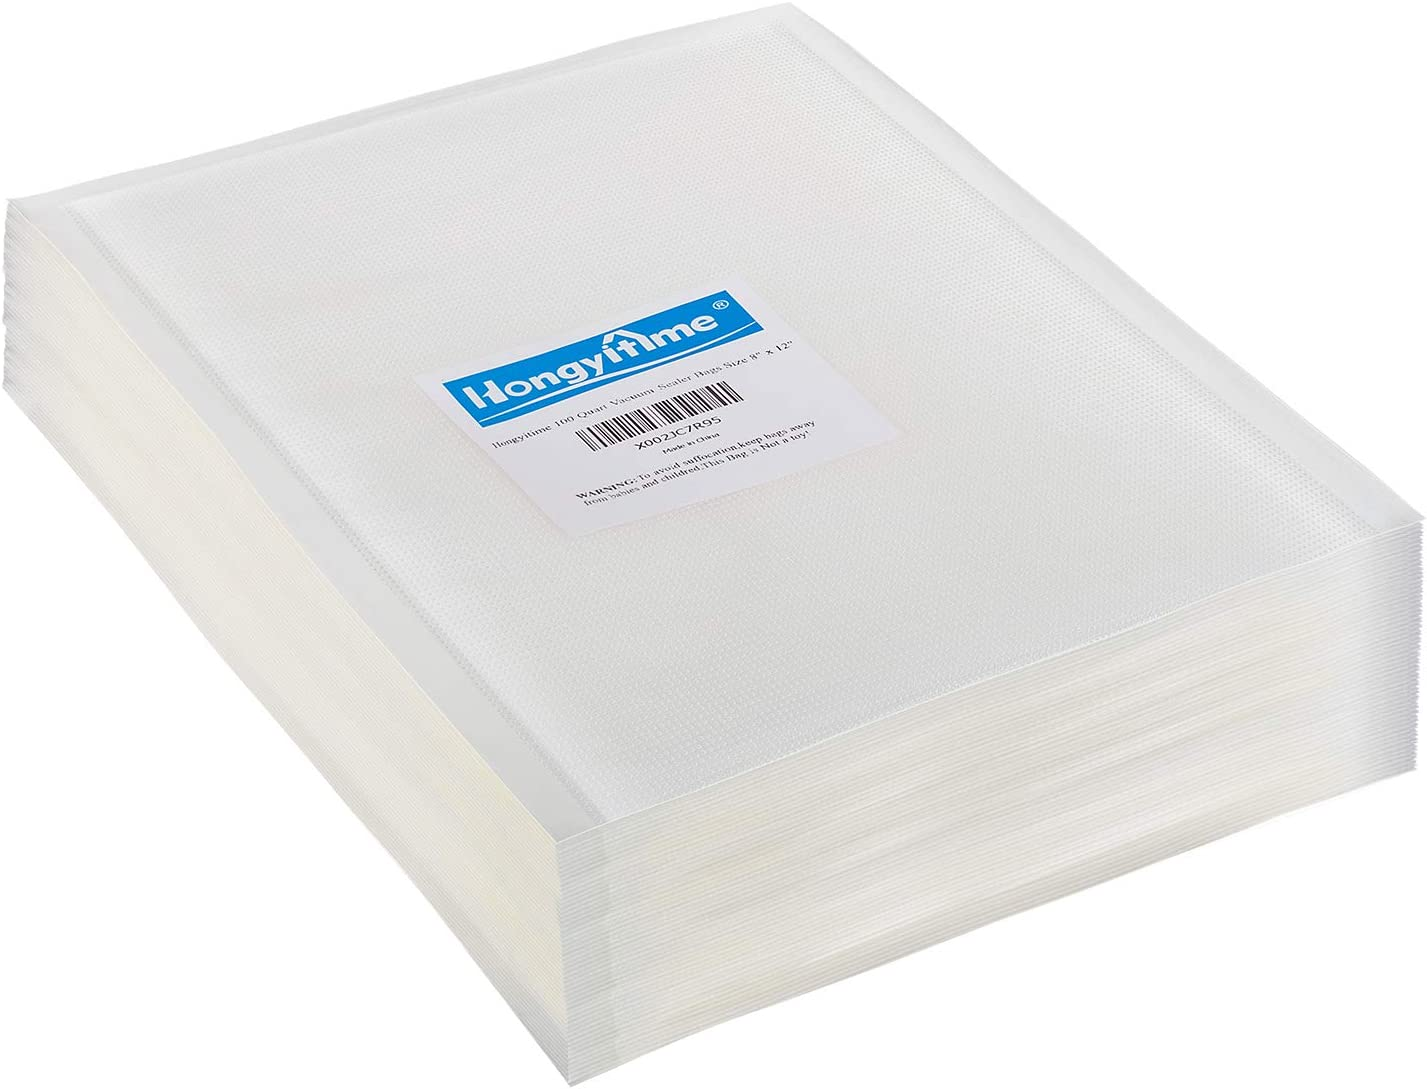 """Hongyitime 100 Quart Vacuum Sealer Bags Size 8"""" x 12"""" for Food Saver, Sous Vide Vaccume Safe, BPA Free,Seal a Meal Type Vac Sealers, Heavy Duty, Great for vac storage, Meal Prep or Sous Vide"""